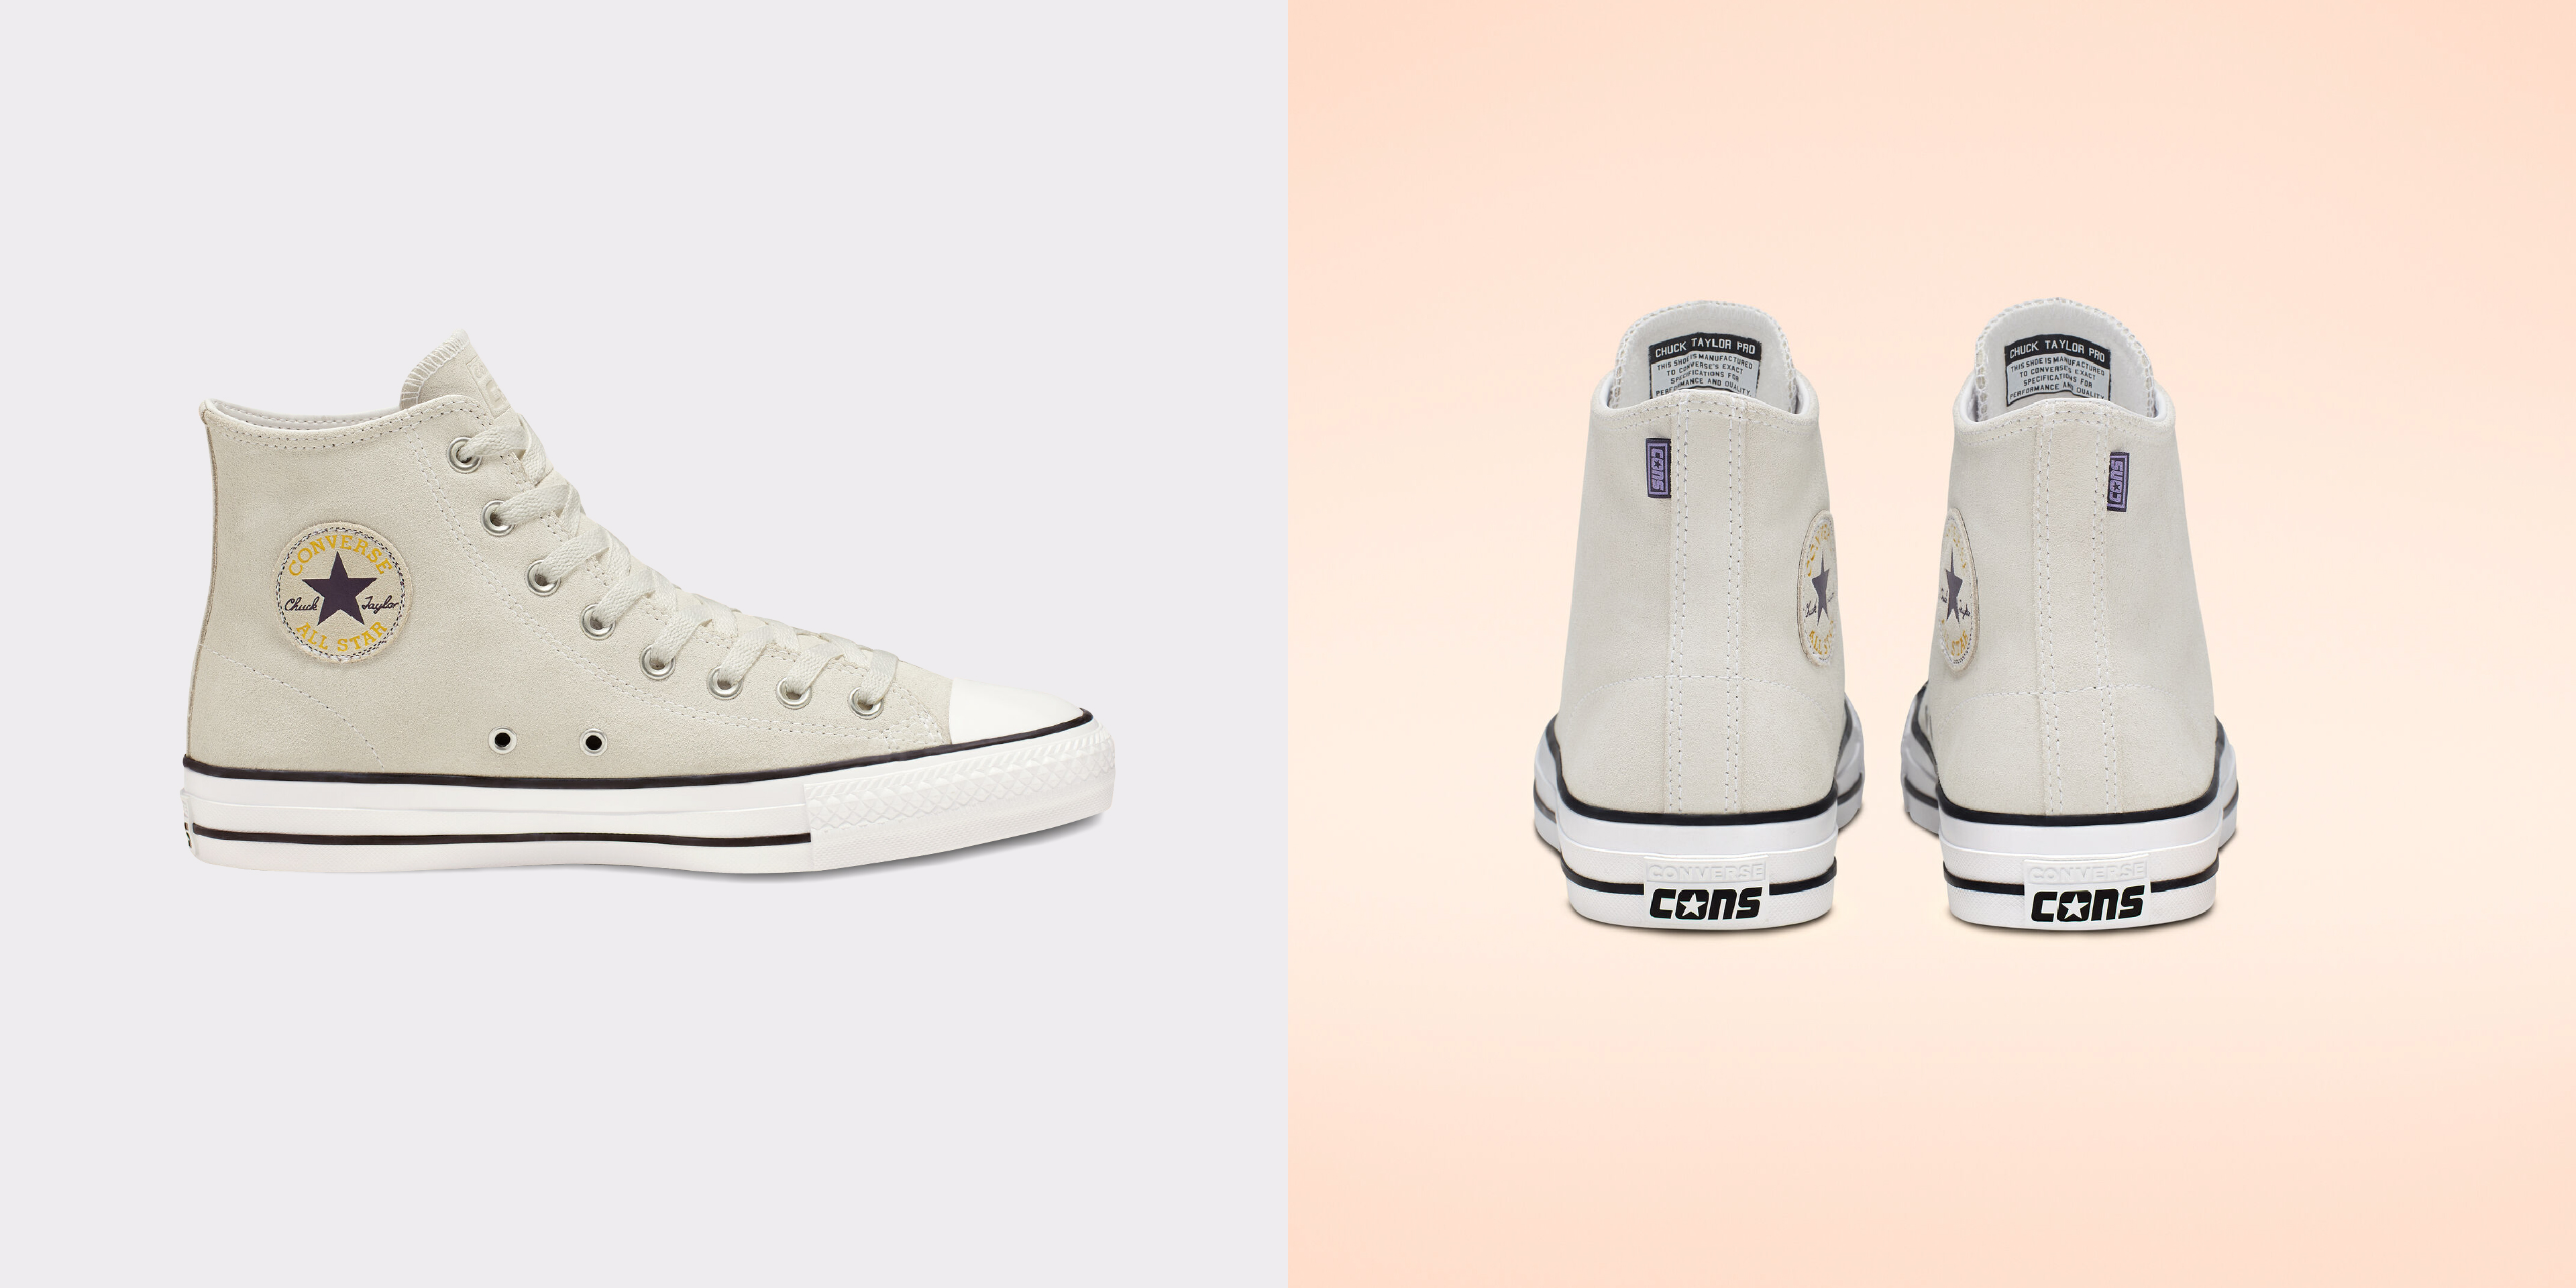 Converse CTAS Pro Hi Vintage - Cream color, side profile view and back view